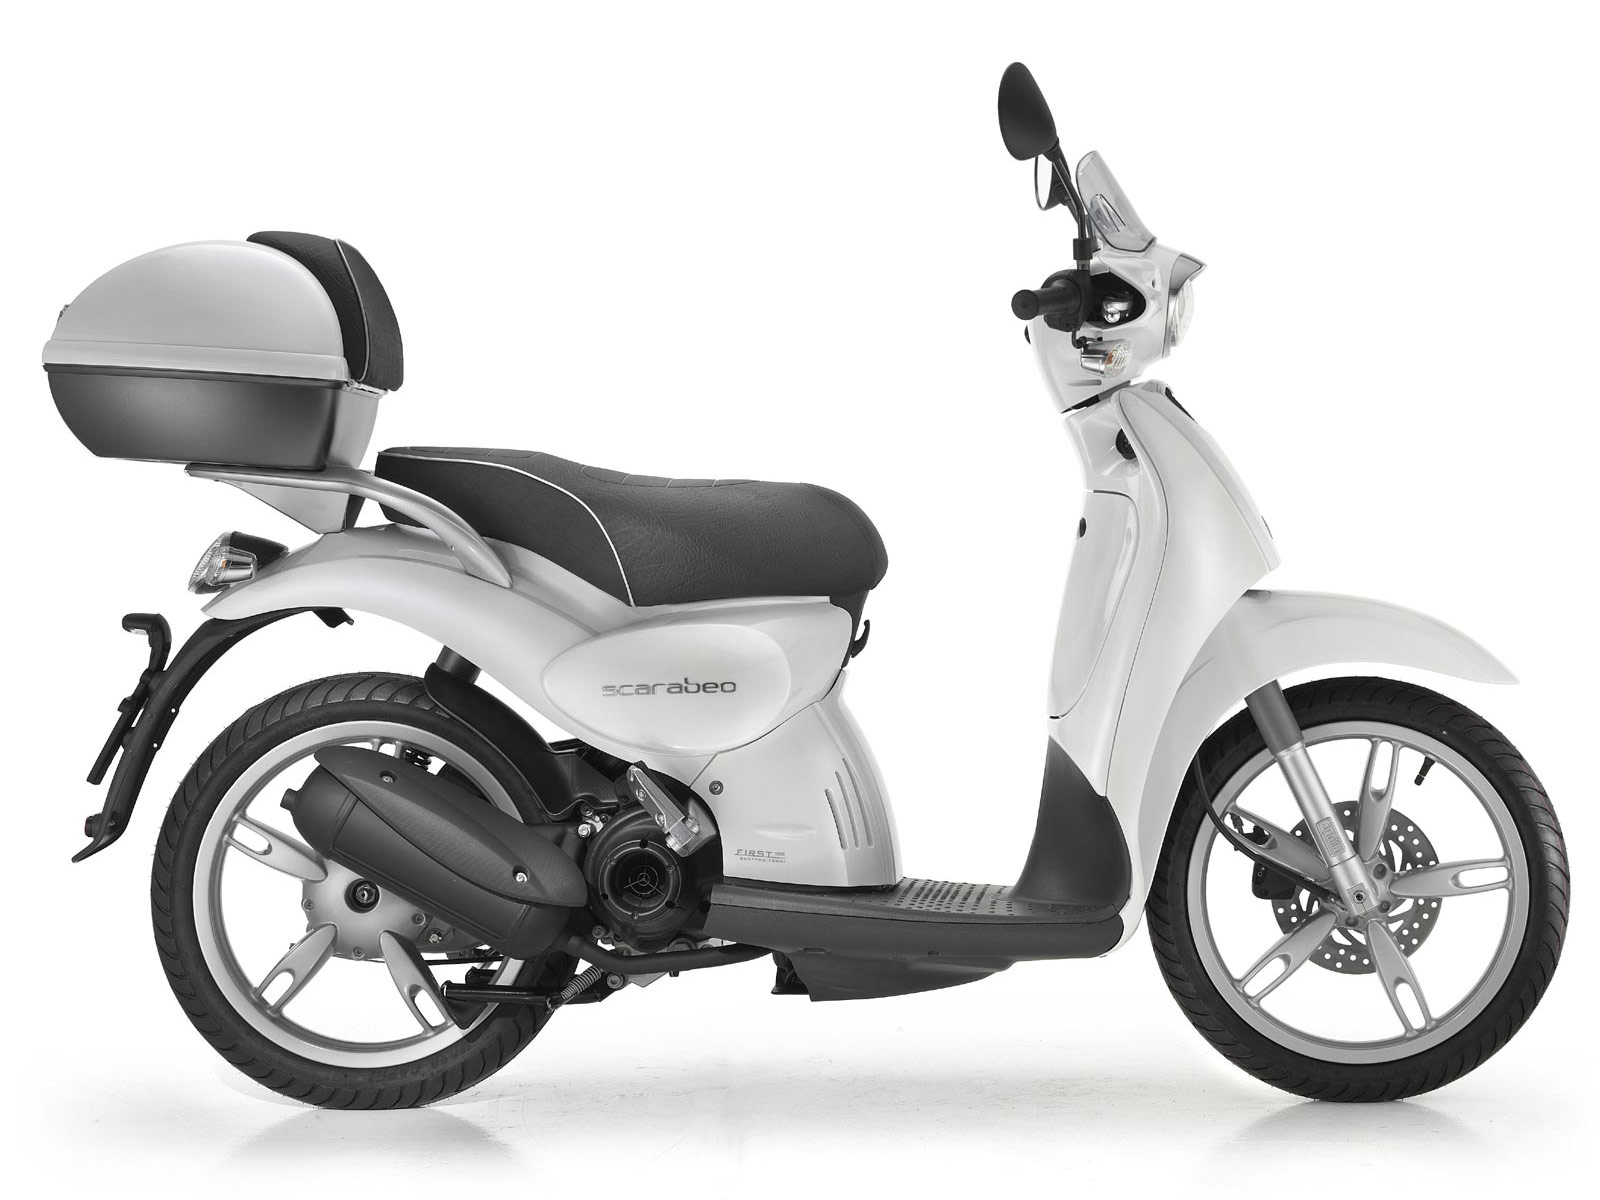 2009 aprilia scarabeo 100 4t scooter accident lawyers. Black Bedroom Furniture Sets. Home Design Ideas